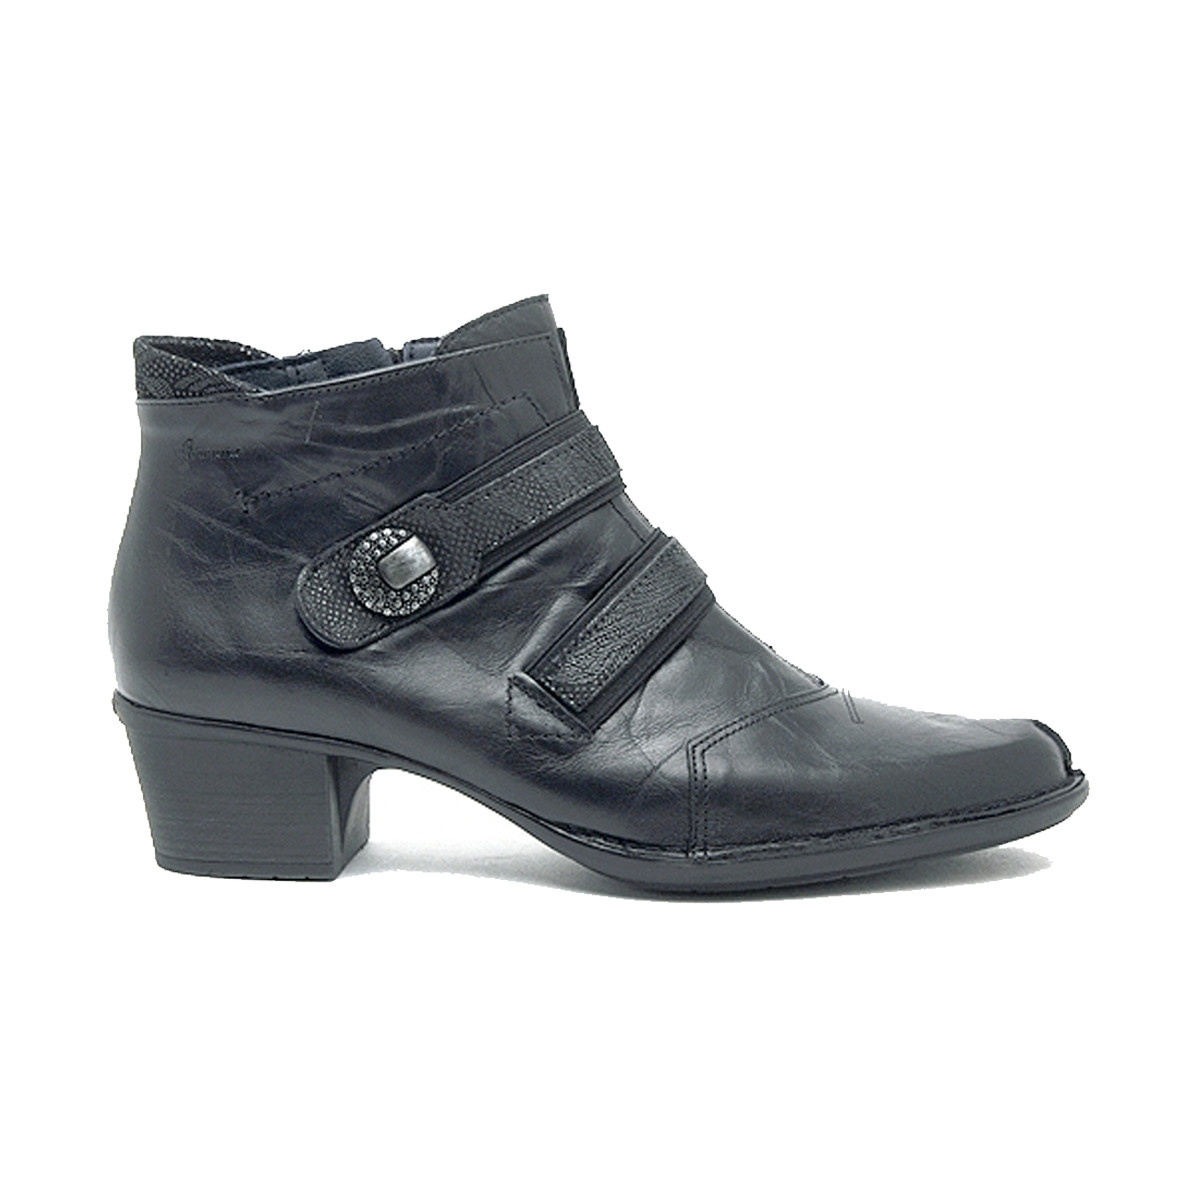 Dorking Dorking Women's D7562 Black